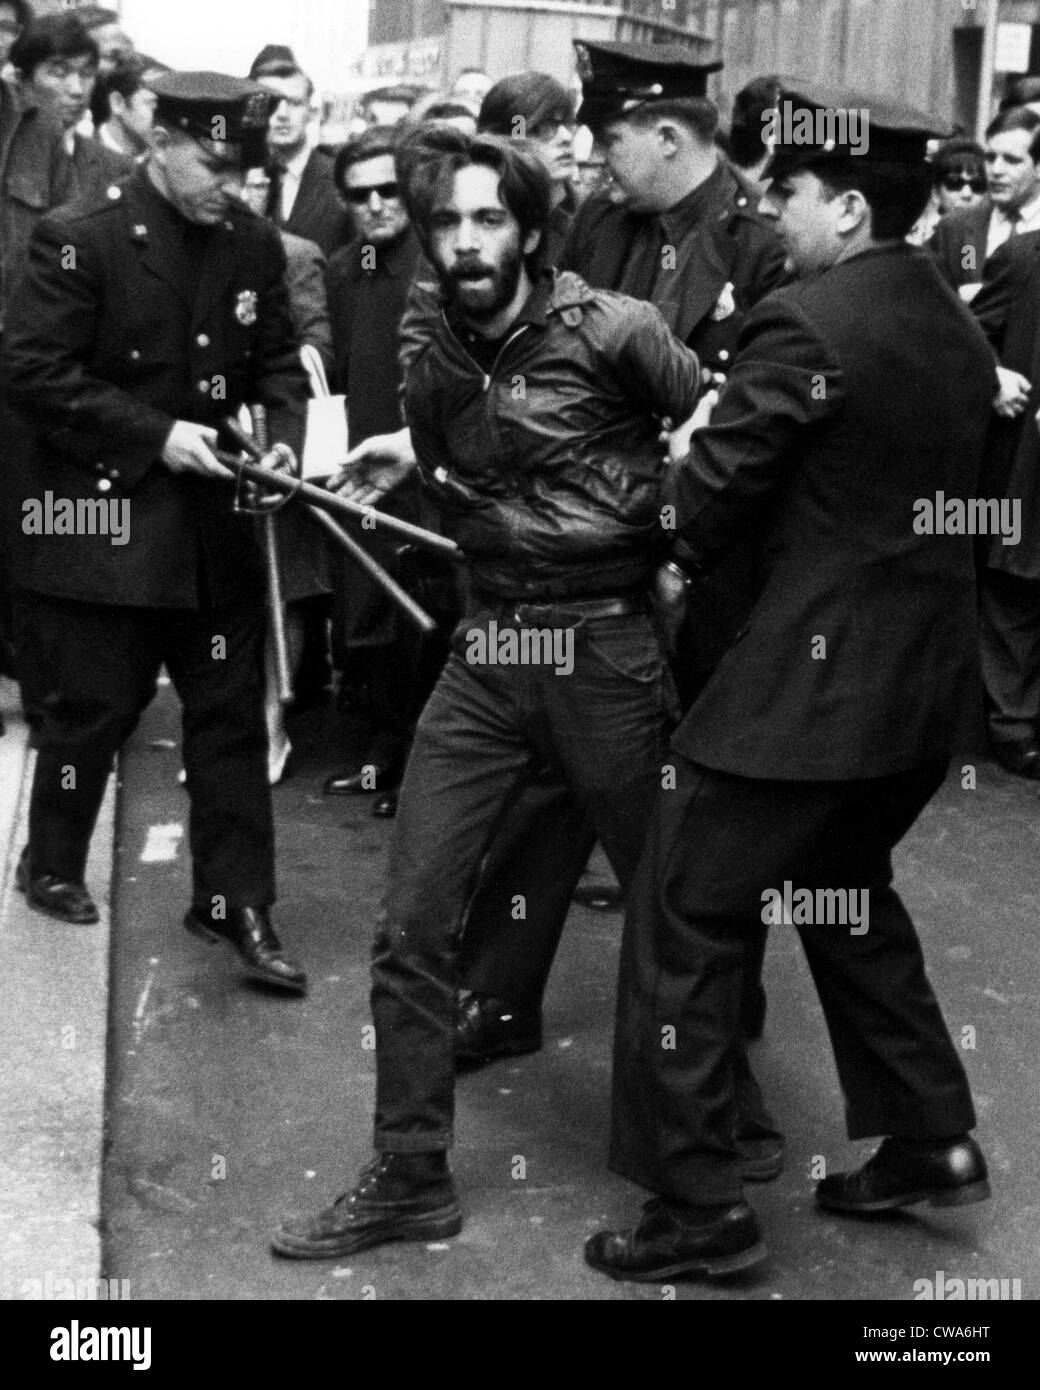 DEMONSTRATION, NEW YORK: Policemen walk off a demonstrator in front of the Associated Press building during a demonstration - Stock Image